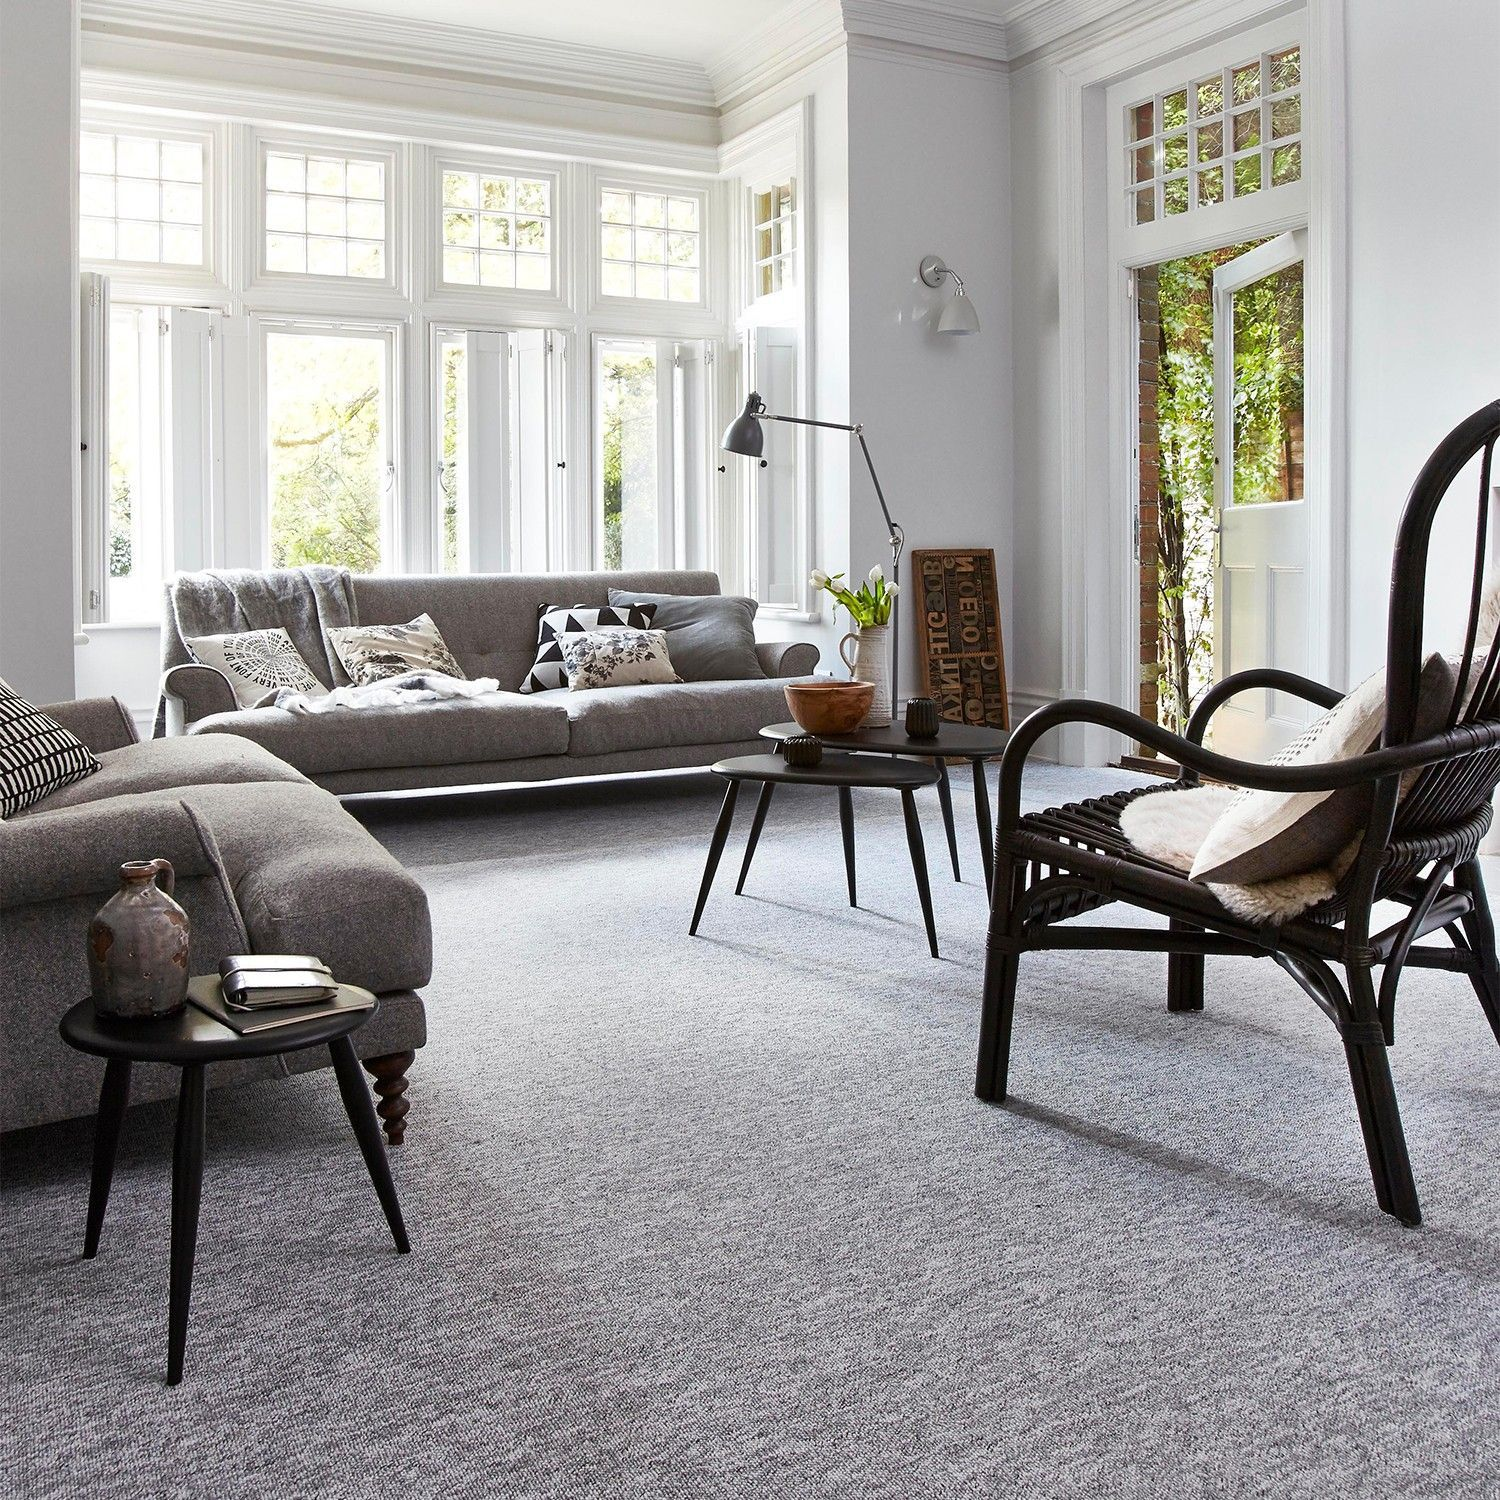 Living Room Ideas White Walls Grey Carpet In 2020 Grey Carpet